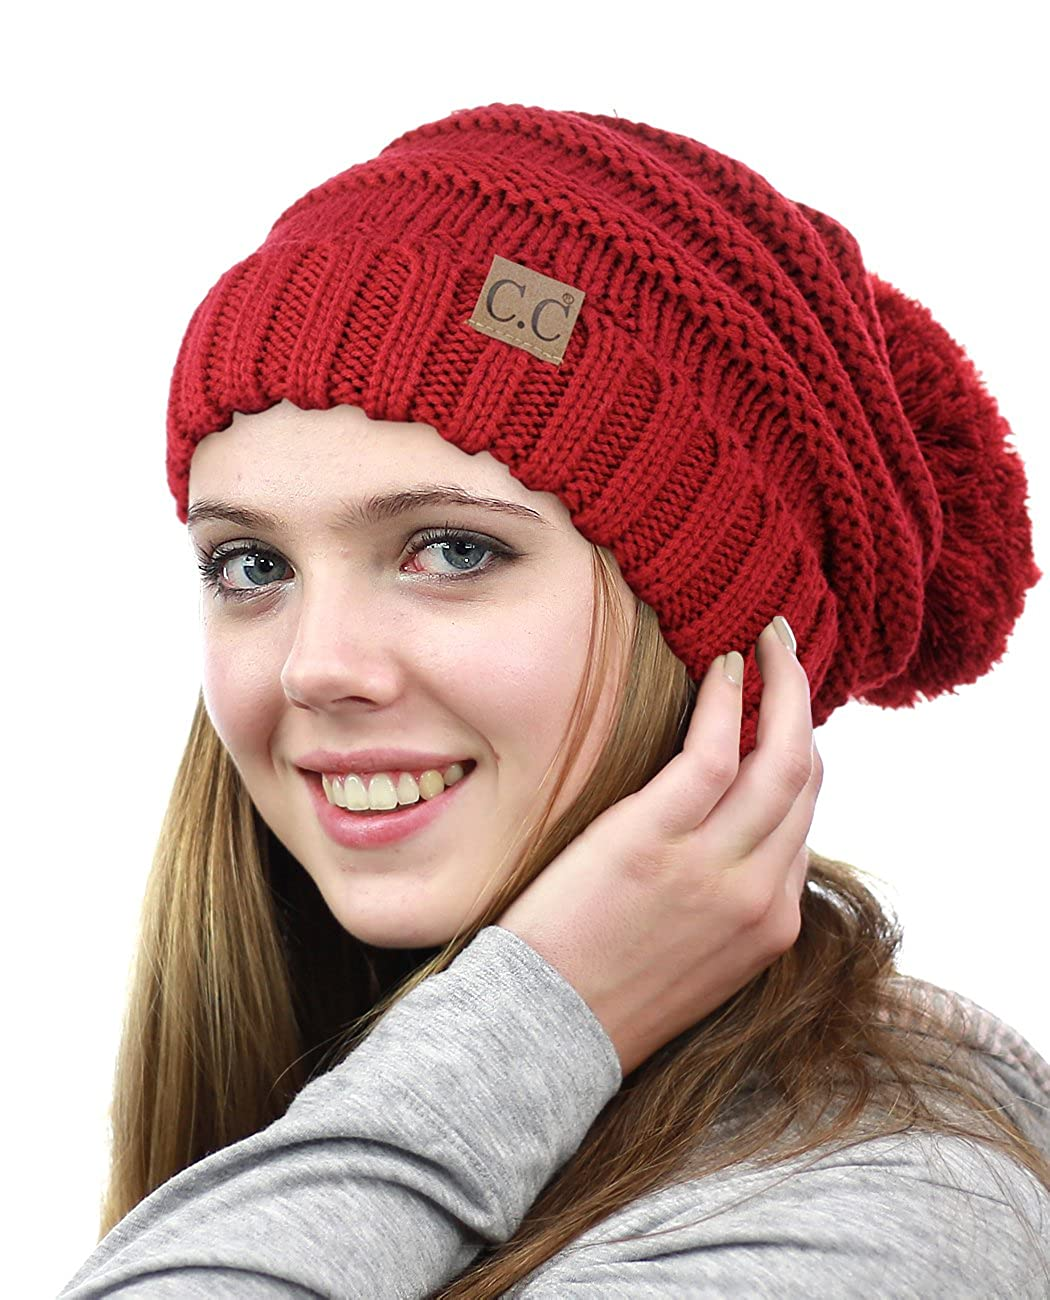 8ae4177b67532 C.C NYFASHION101 Pom Pom Oversized Baggy Slouchy Thick Winter Beanie Hat  HAT100POMPOM-BURG